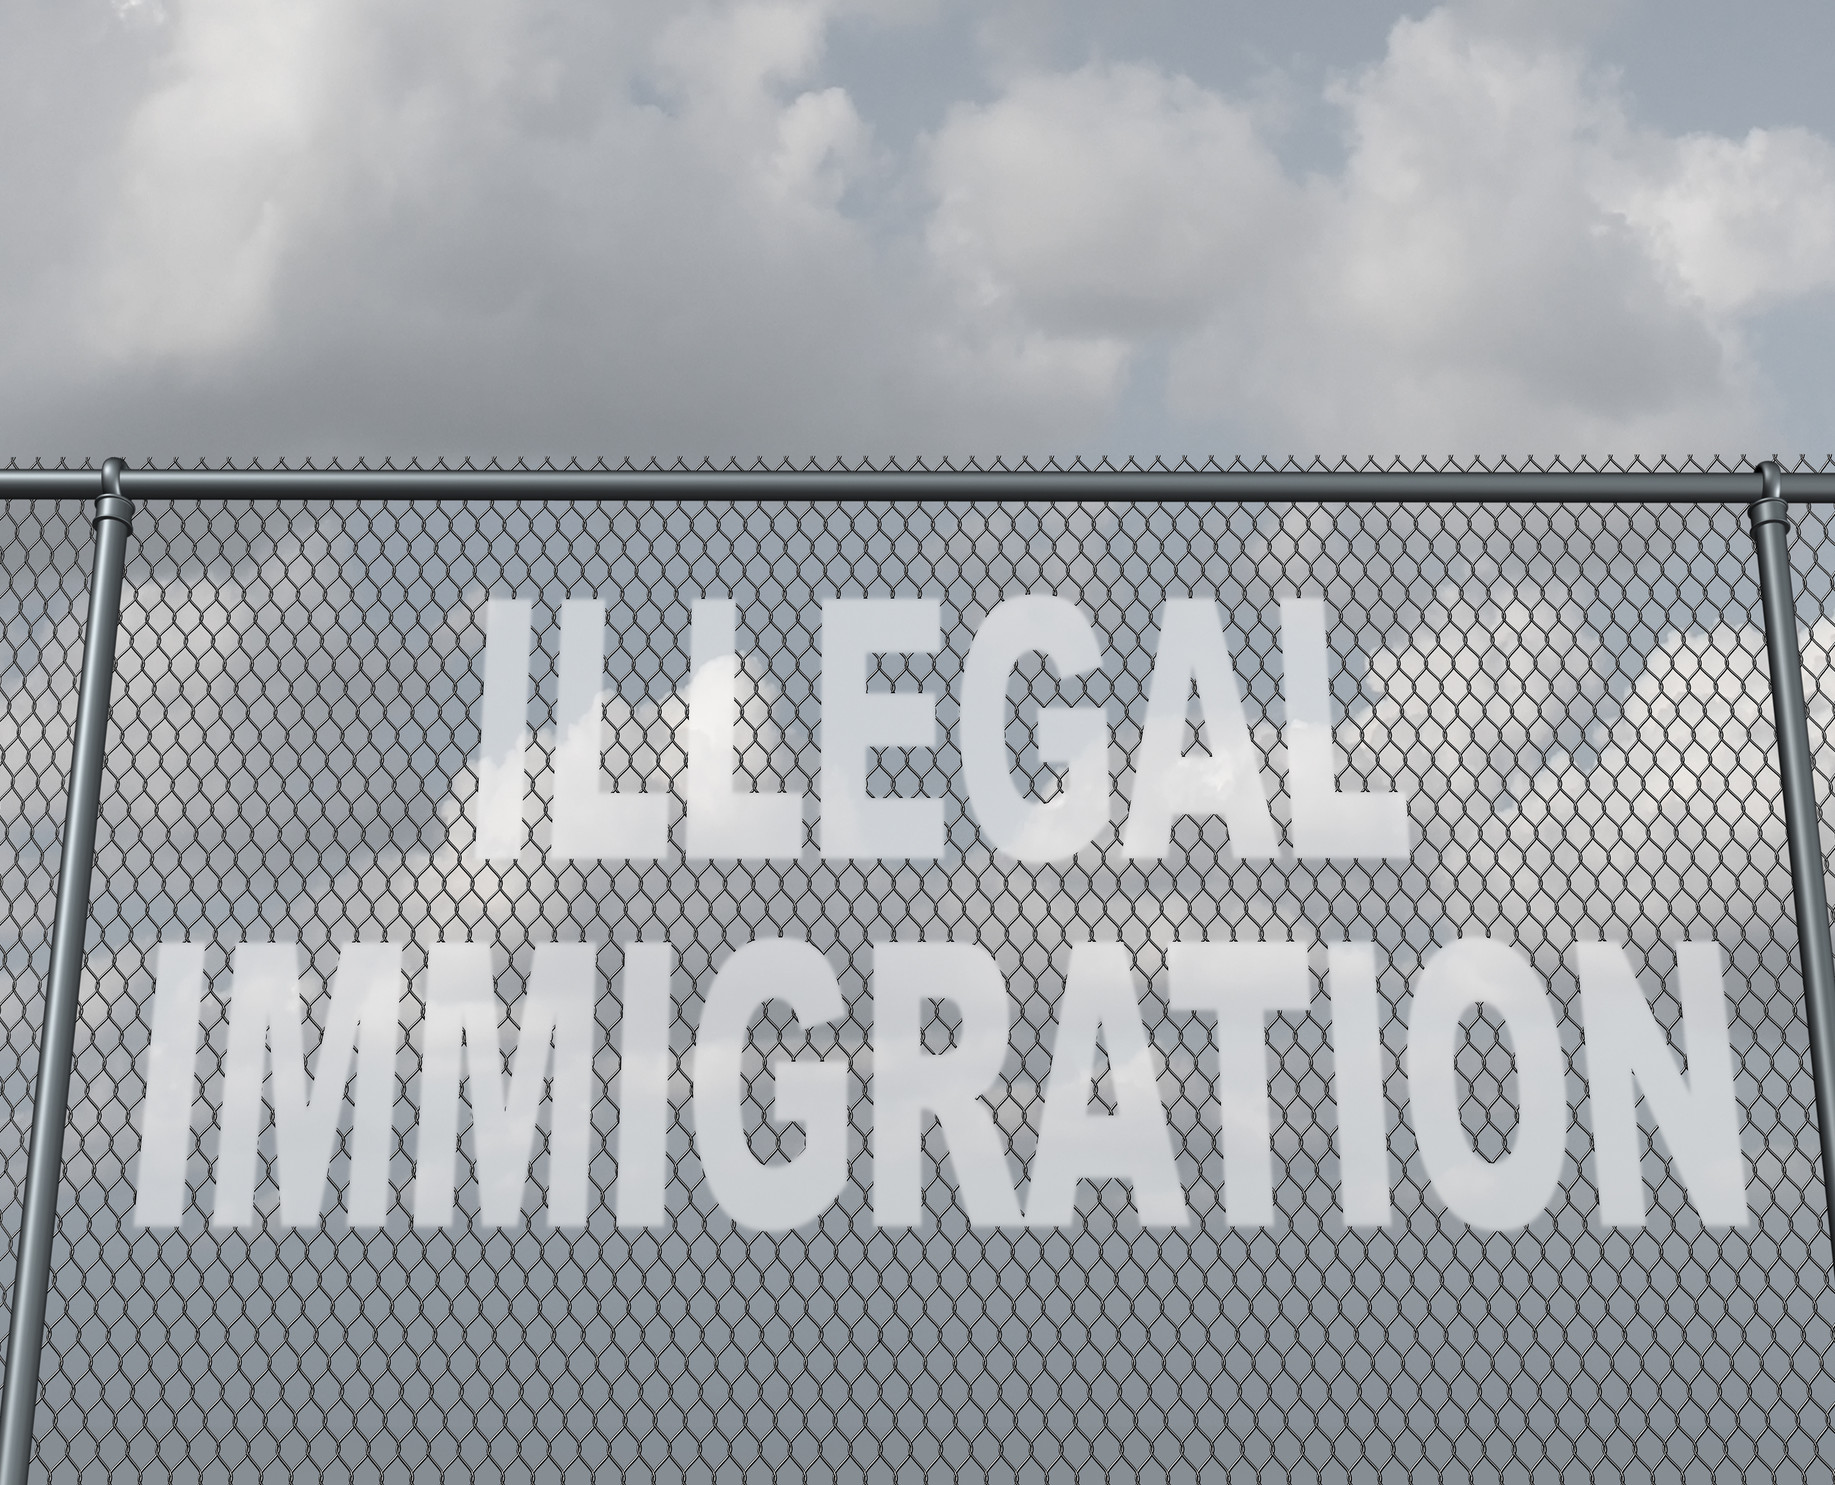 Illegal immigration concept as a chain fence with a hole shaped as text that represents people illegaly crossing a national border violating the migration law of the country as undocumented immigrants.